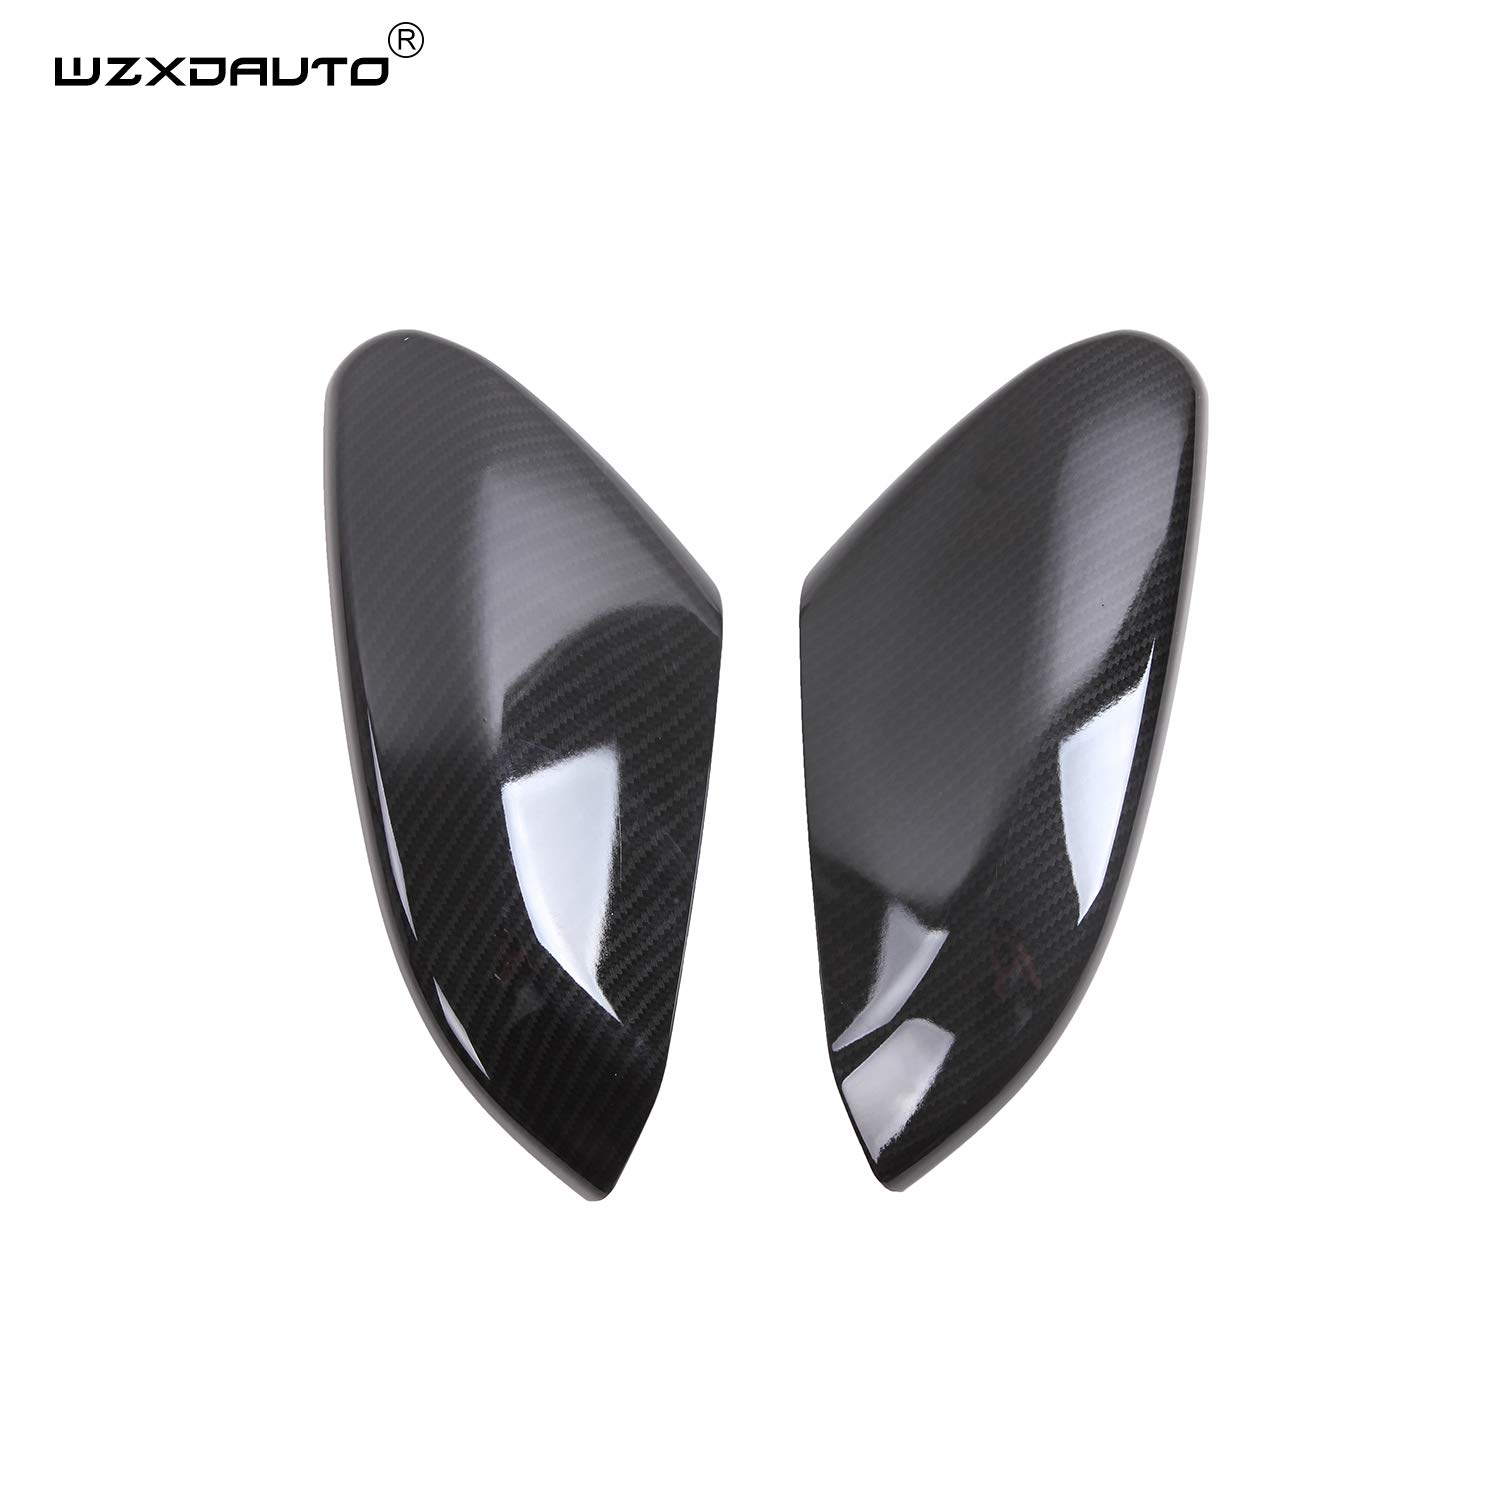 WZXDAUTO Carbon Fiber Style Print for Civic Wing Mirror Cover Rearview Mirror Cover Trims for Honda Civic Sedan Coupe 2016 2017 2018 2019